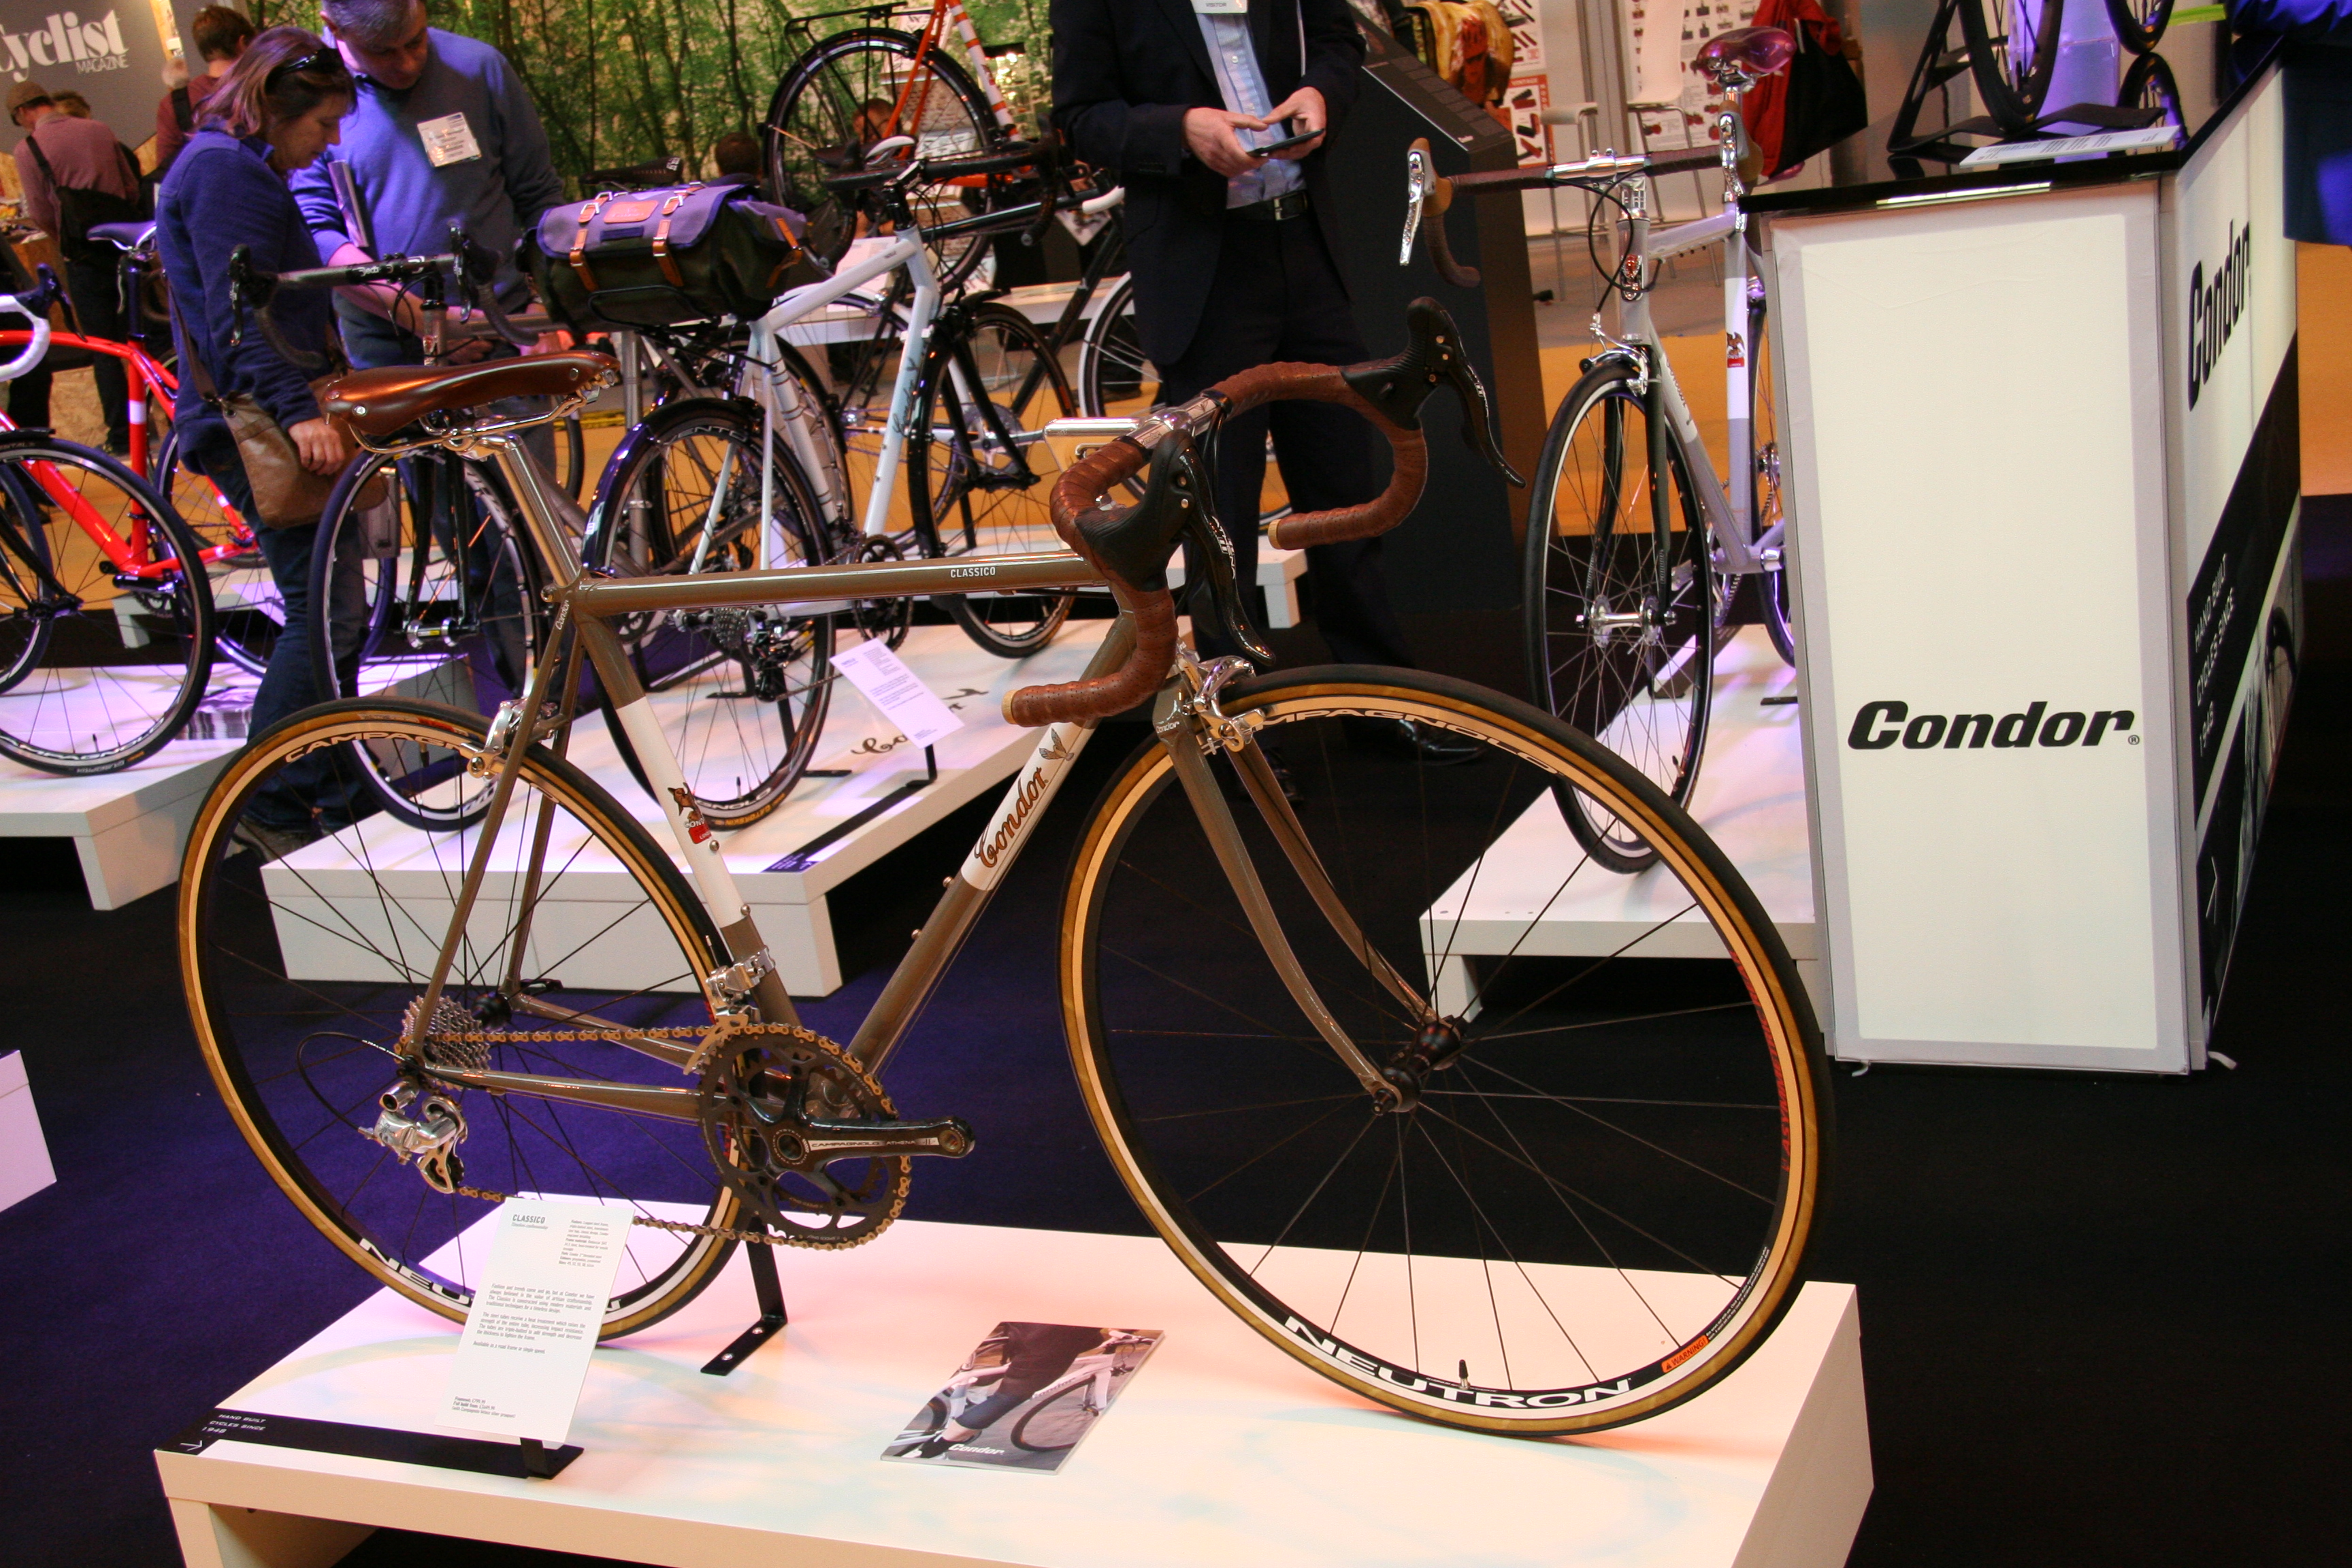 Retro And Vintage At The Cycleshow 2013